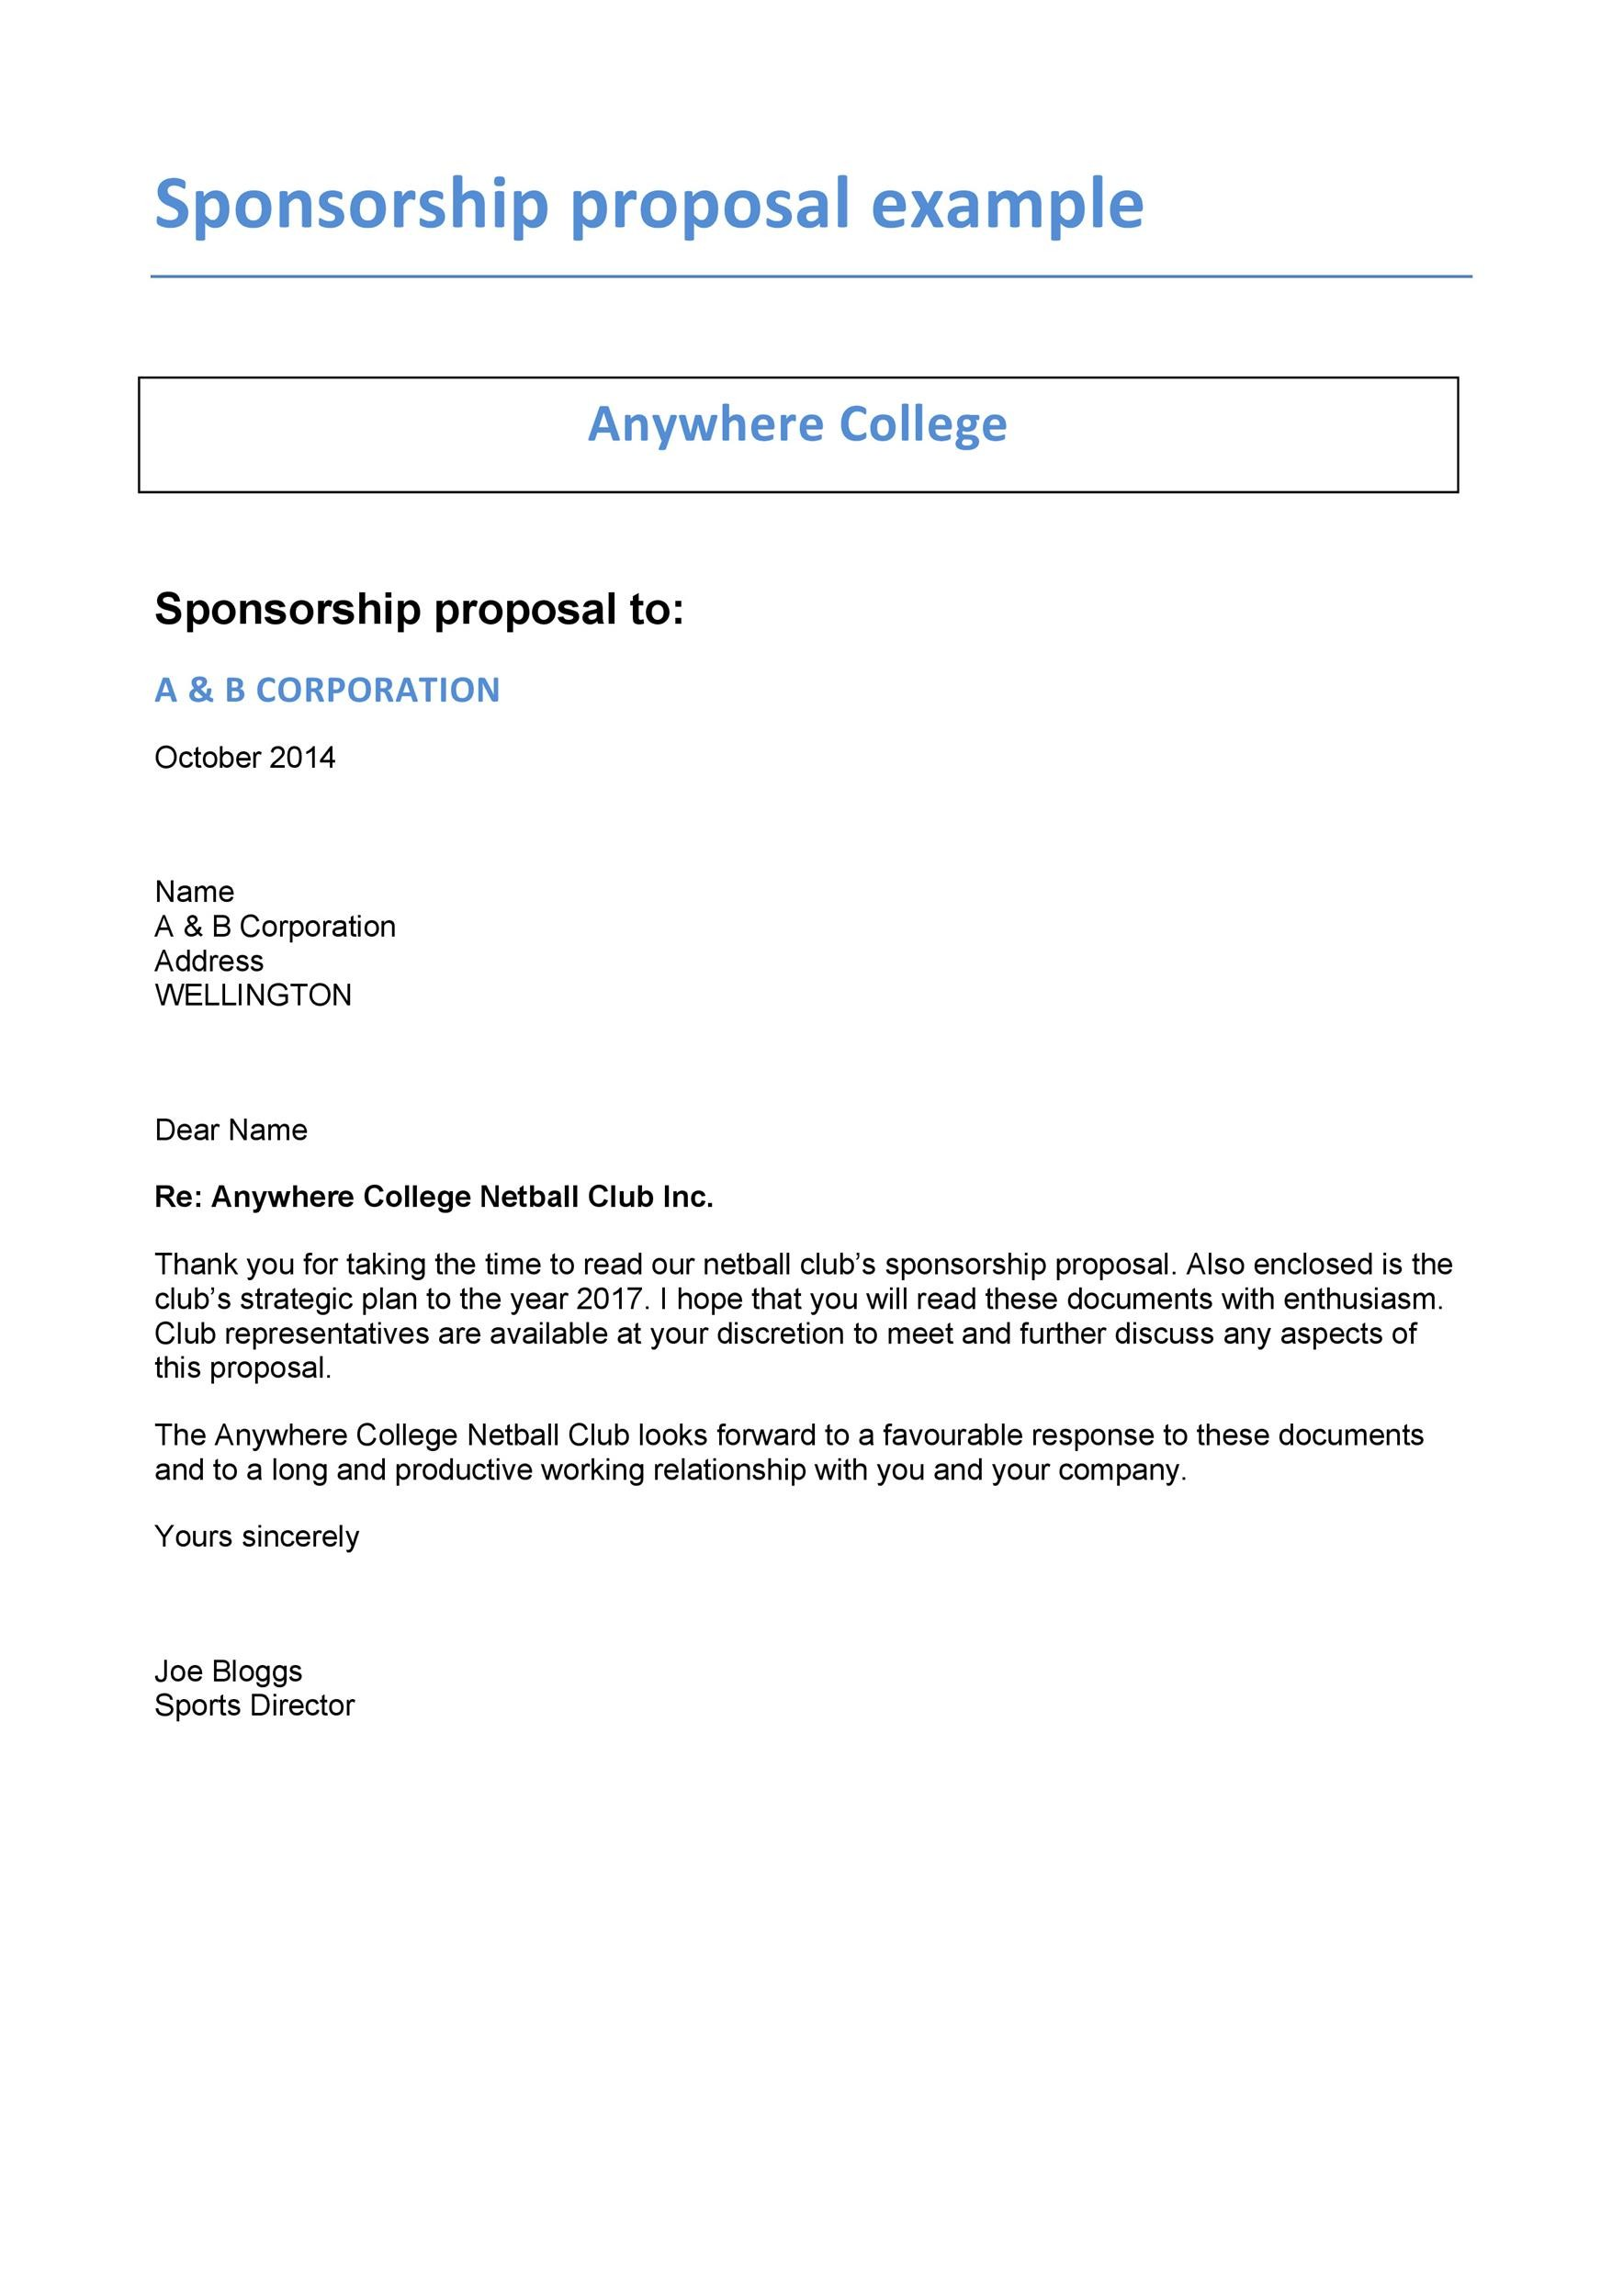 40 Sponsorship Letter Sponsorship Proposal Templates – Example of Sponsorship Proposal